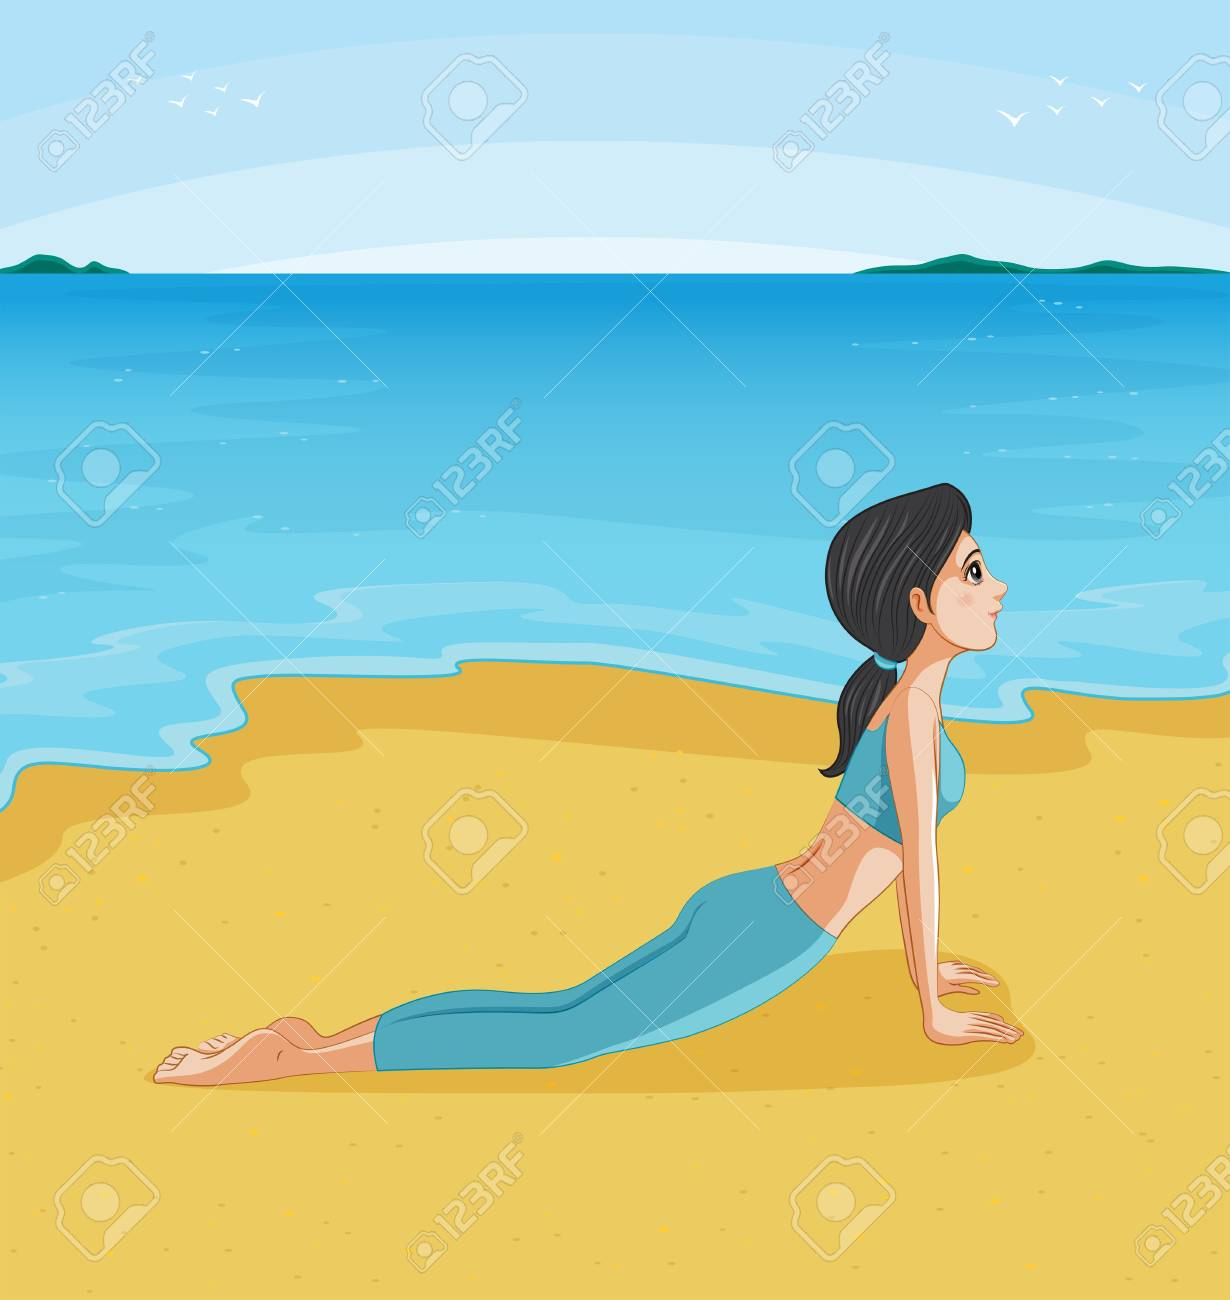 Illustration of a girl doing yoga at the beach Stock Vector - 20517637